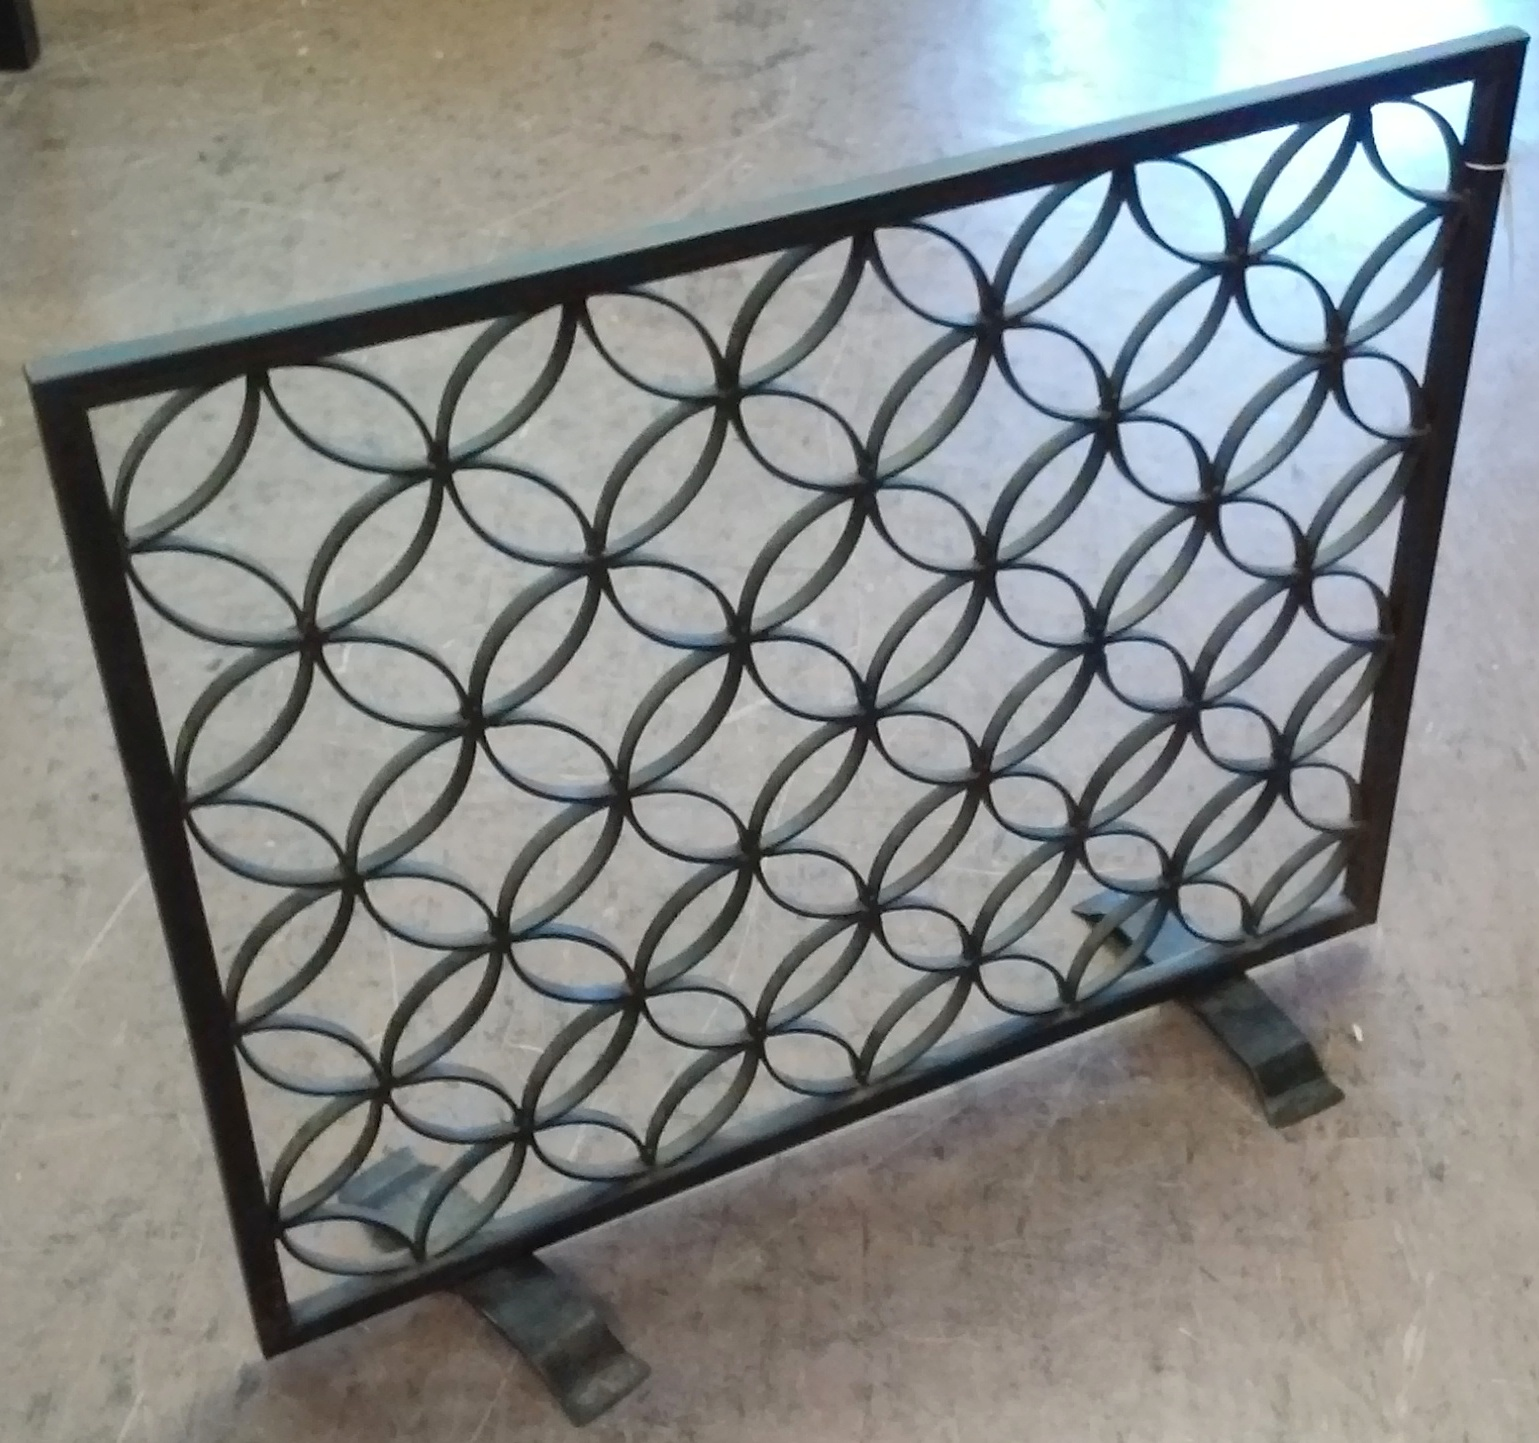 Uhuru Furniture Collectibles Sold 32 X 26 Wrought Iron Fireplace Screen 30